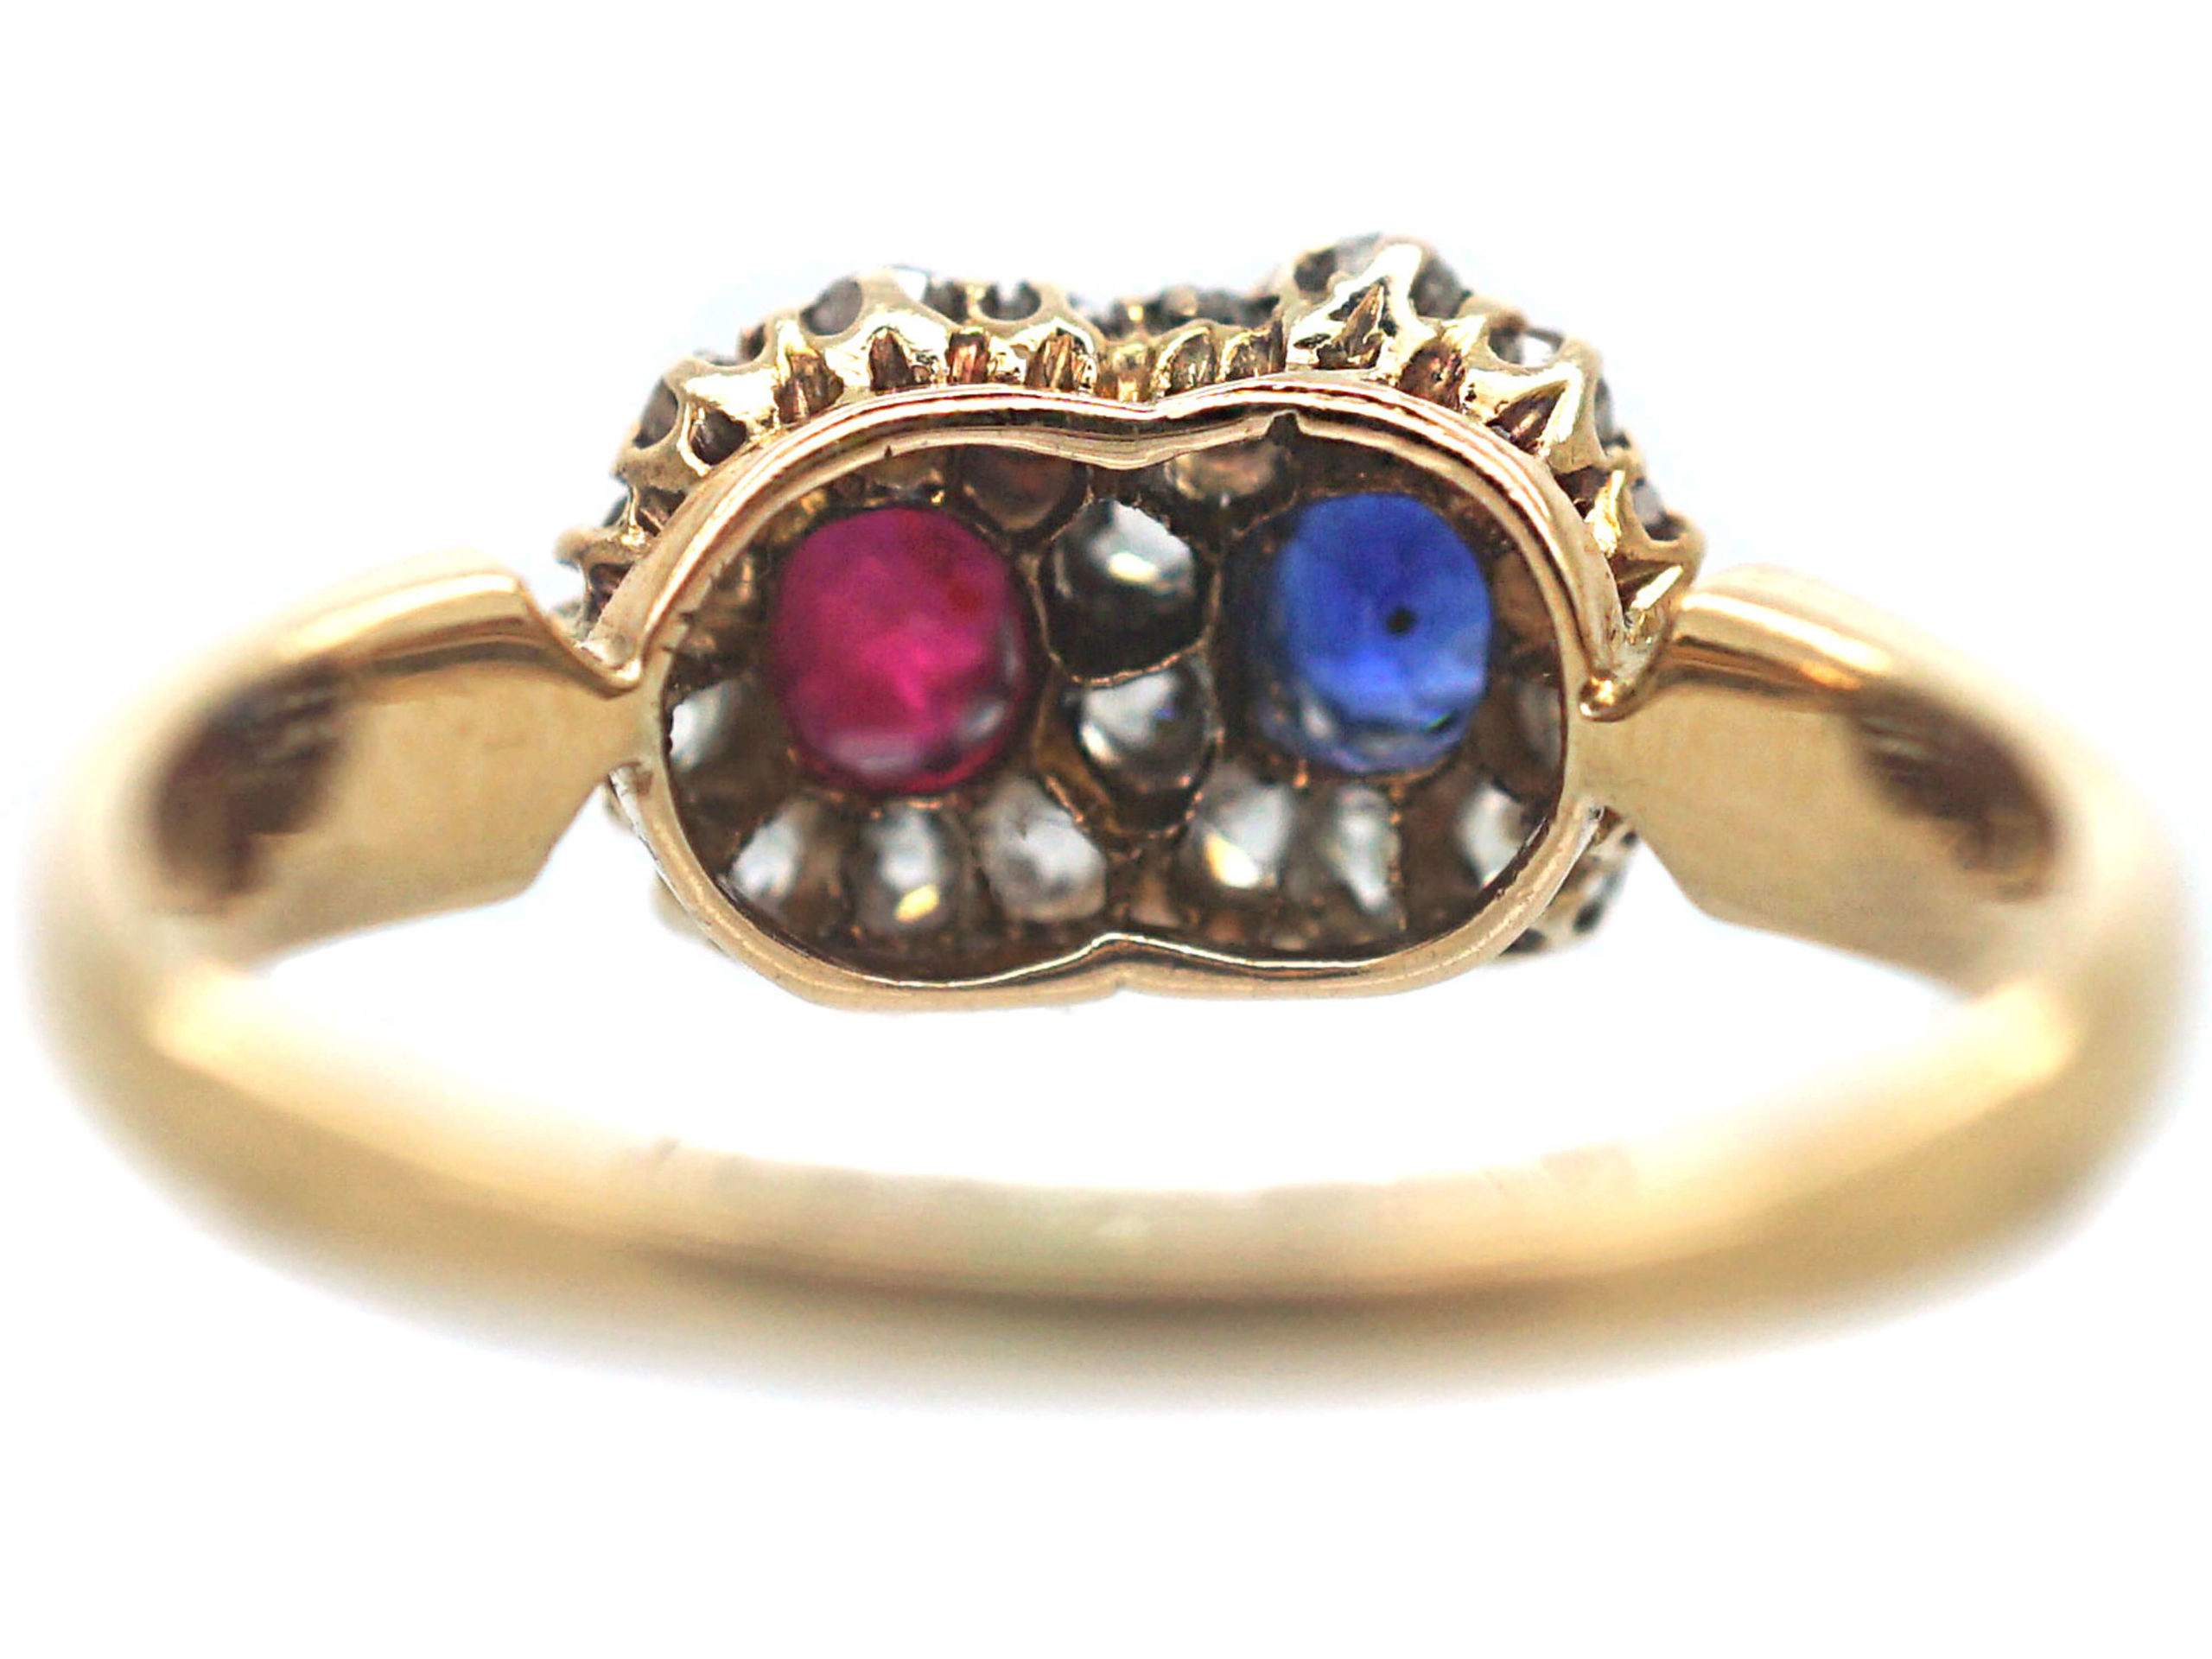 Edwardian 18ct Gold, Sapphire, Ruby & Diamond Double Cluster Ring